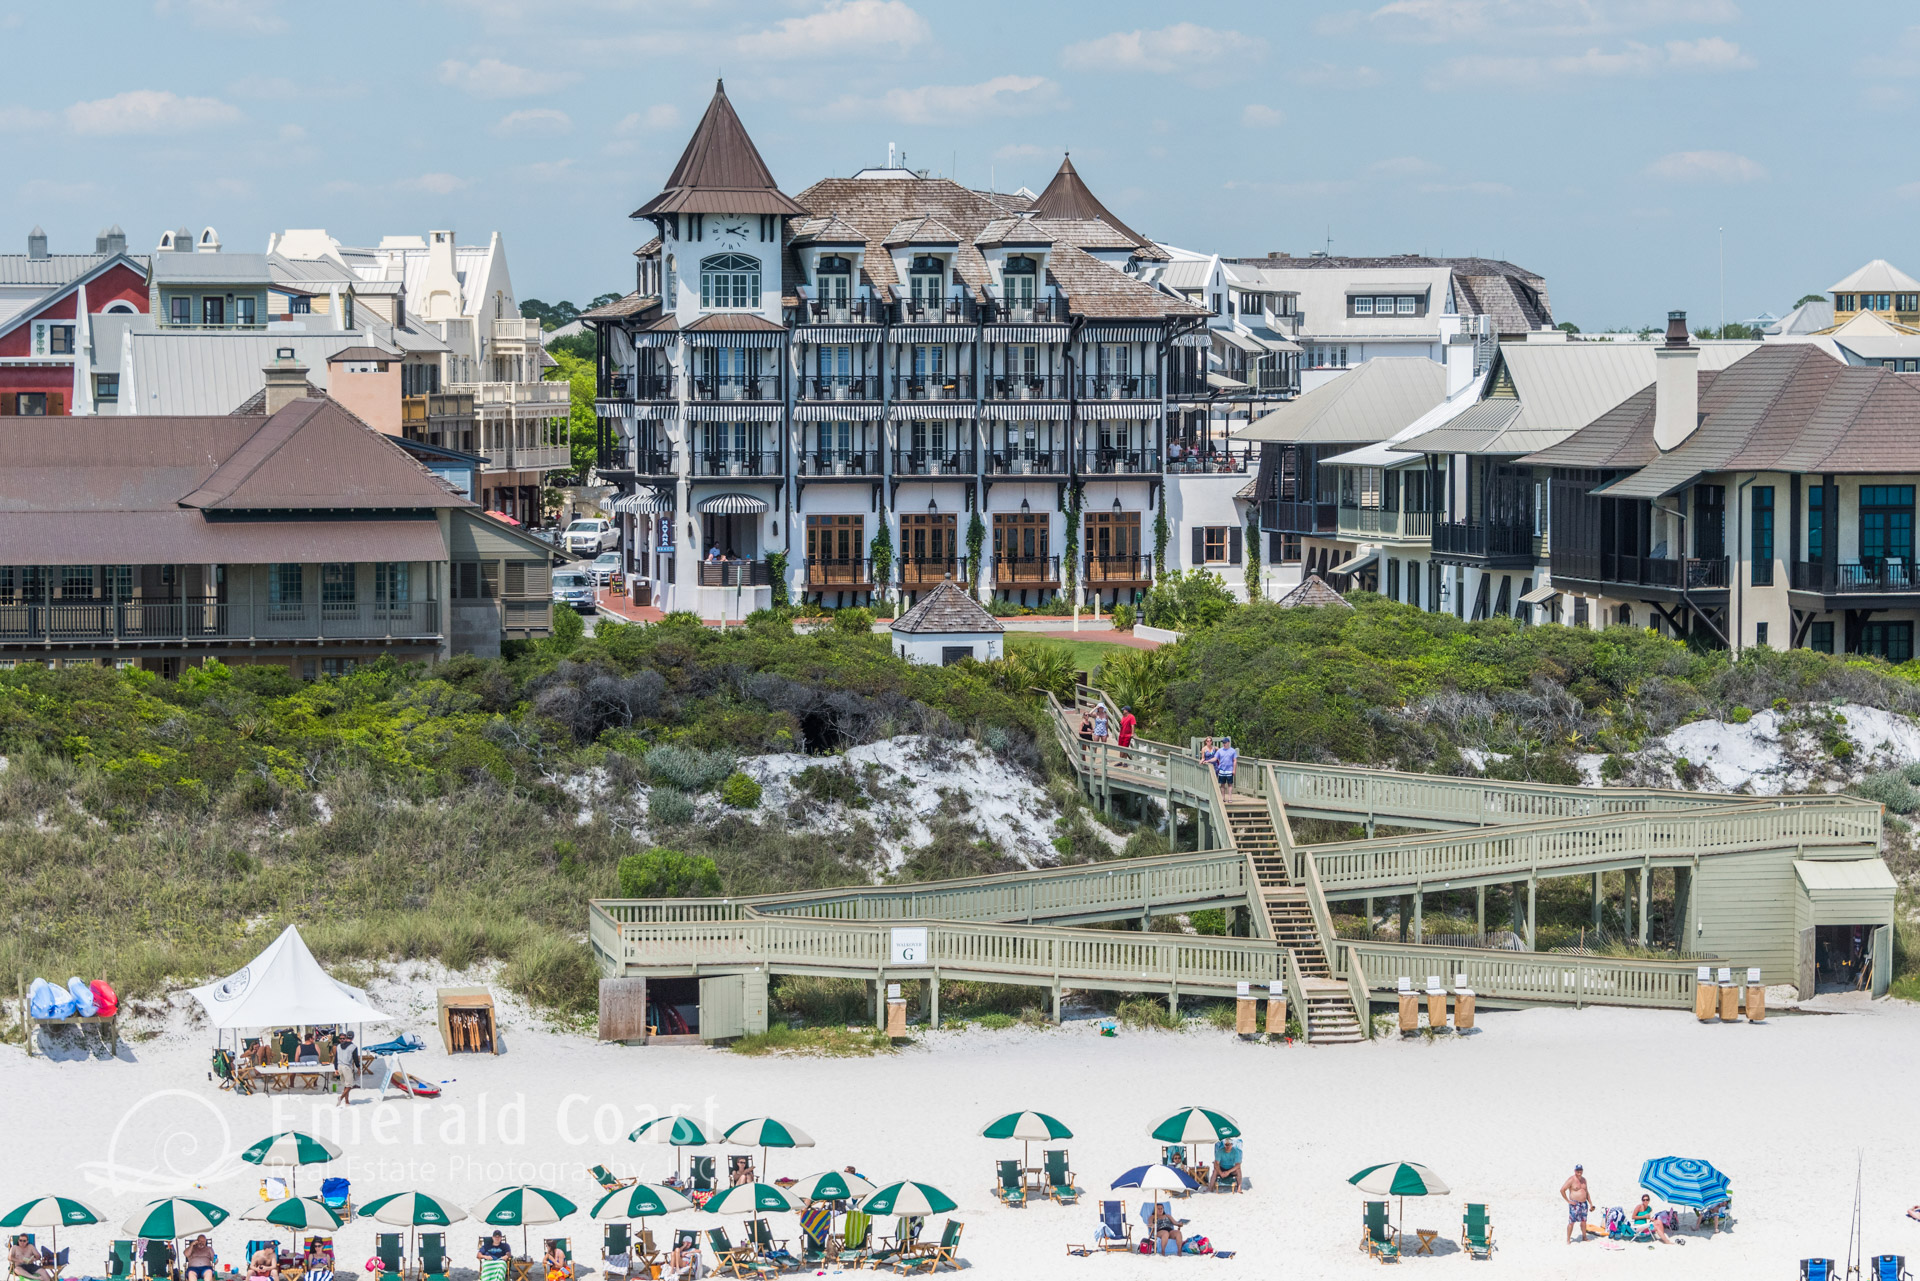 Aerial photo of Rosemary Beach, Florida with Gulf of Mexico